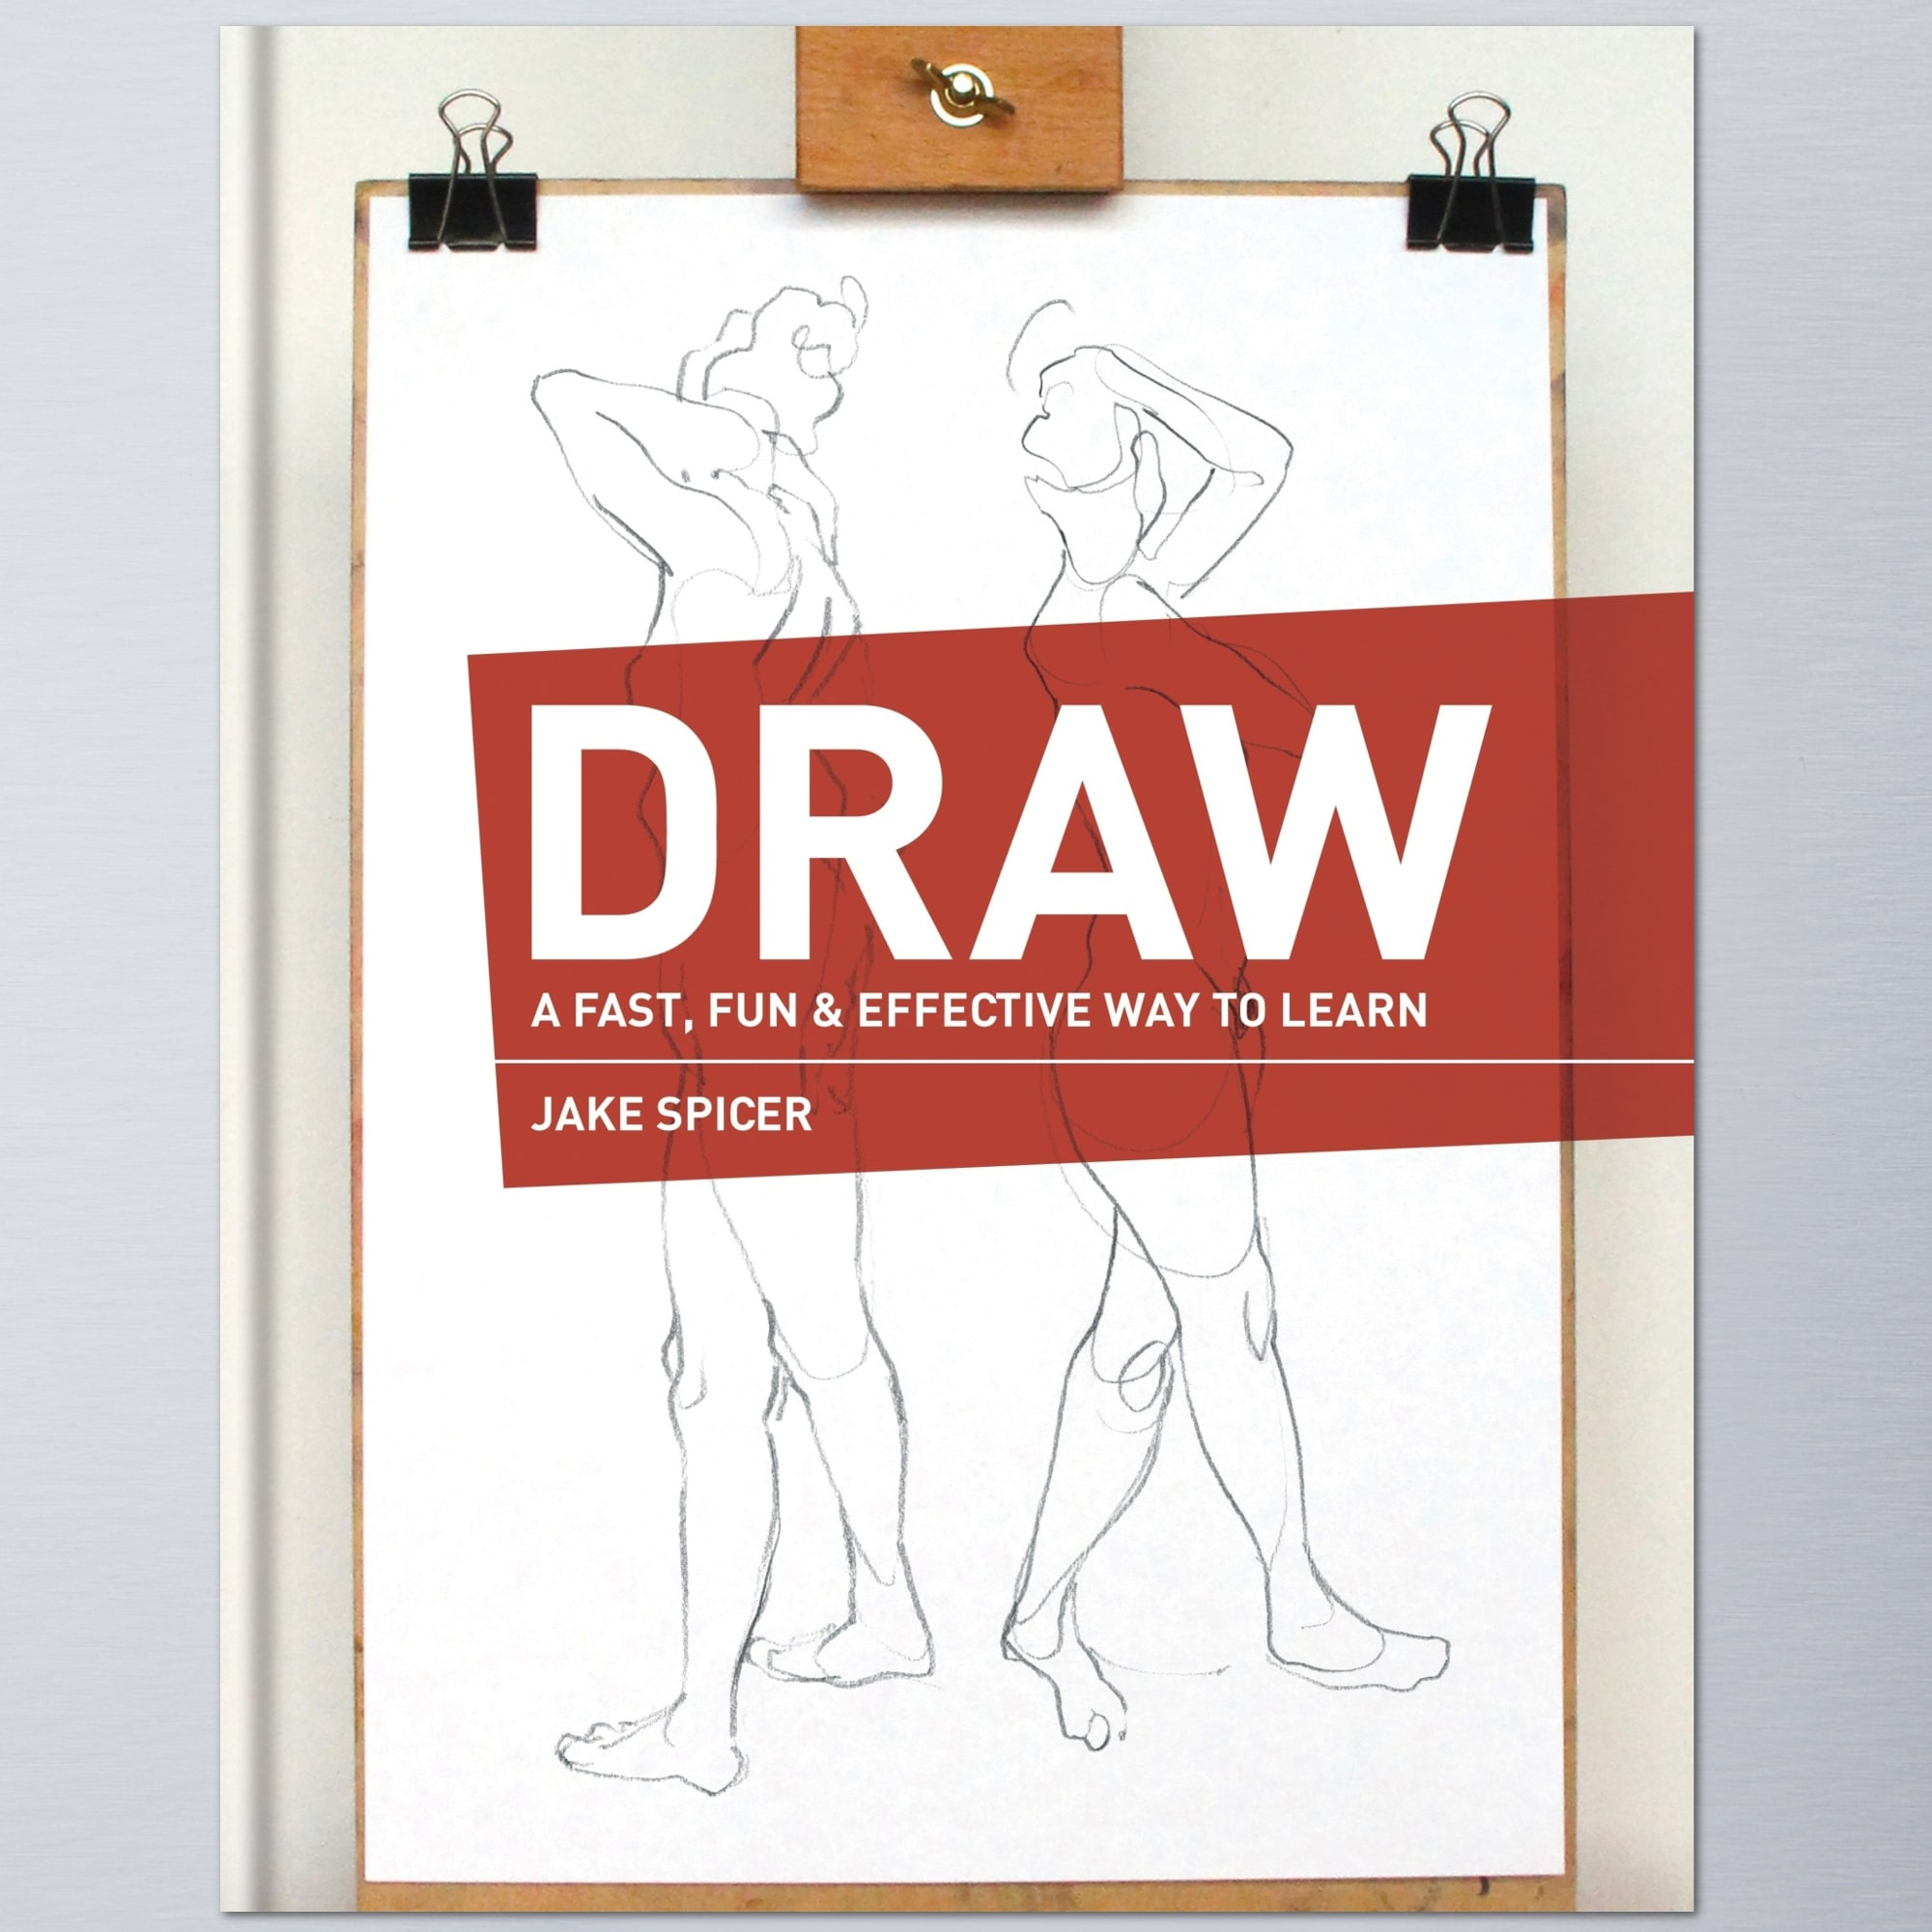 DRAW book -  how to draw course with Jake Spicer on Yodomo